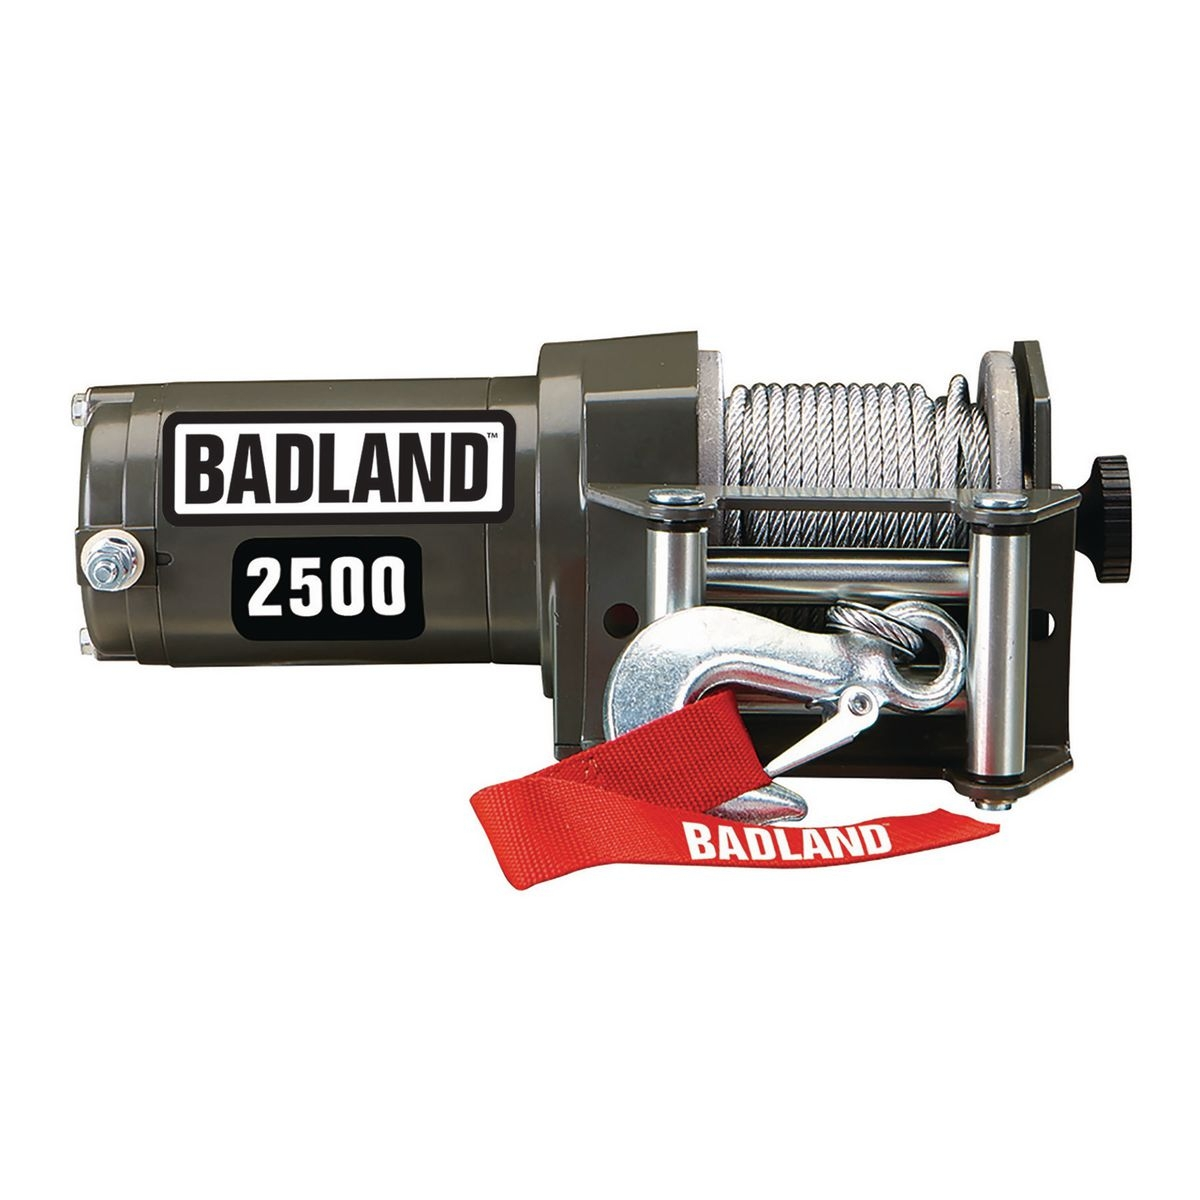 2500 lbs atv utility electric winch with wireless remote controlBadland Winches 61840 2500 Lb Atv Utility Electric Winch With #6